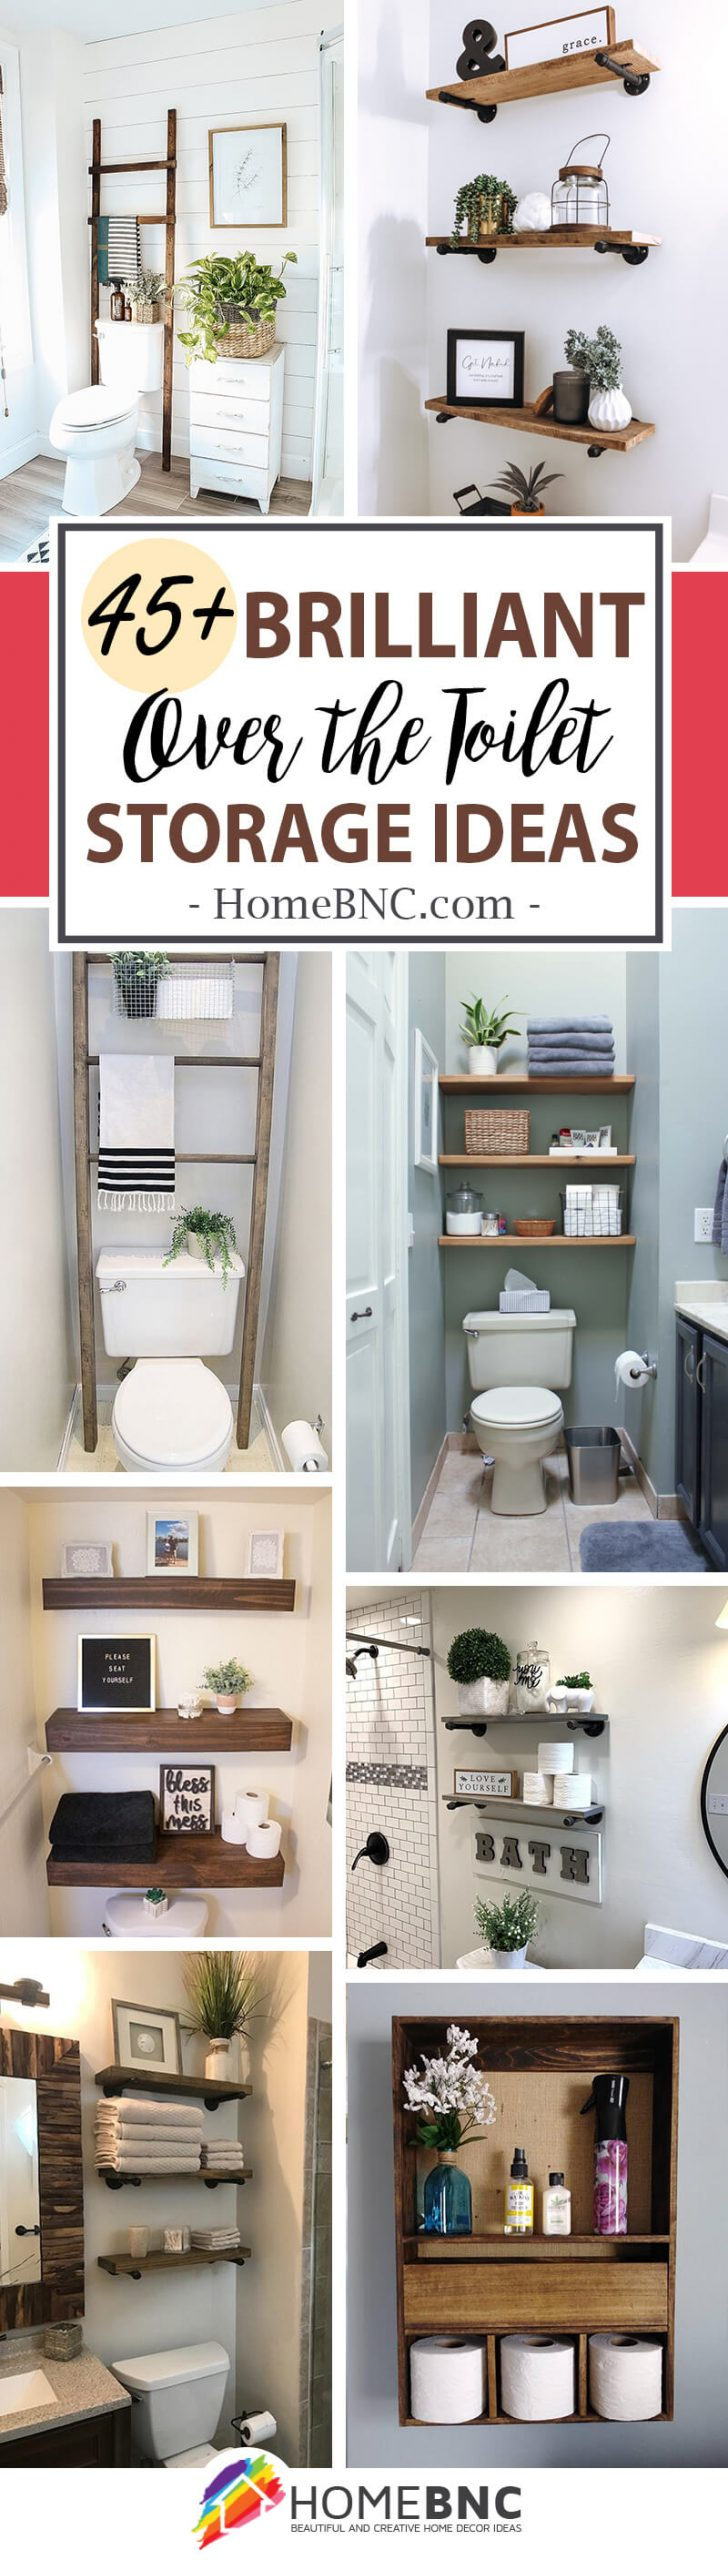 Over The Toilet Storage Ideas